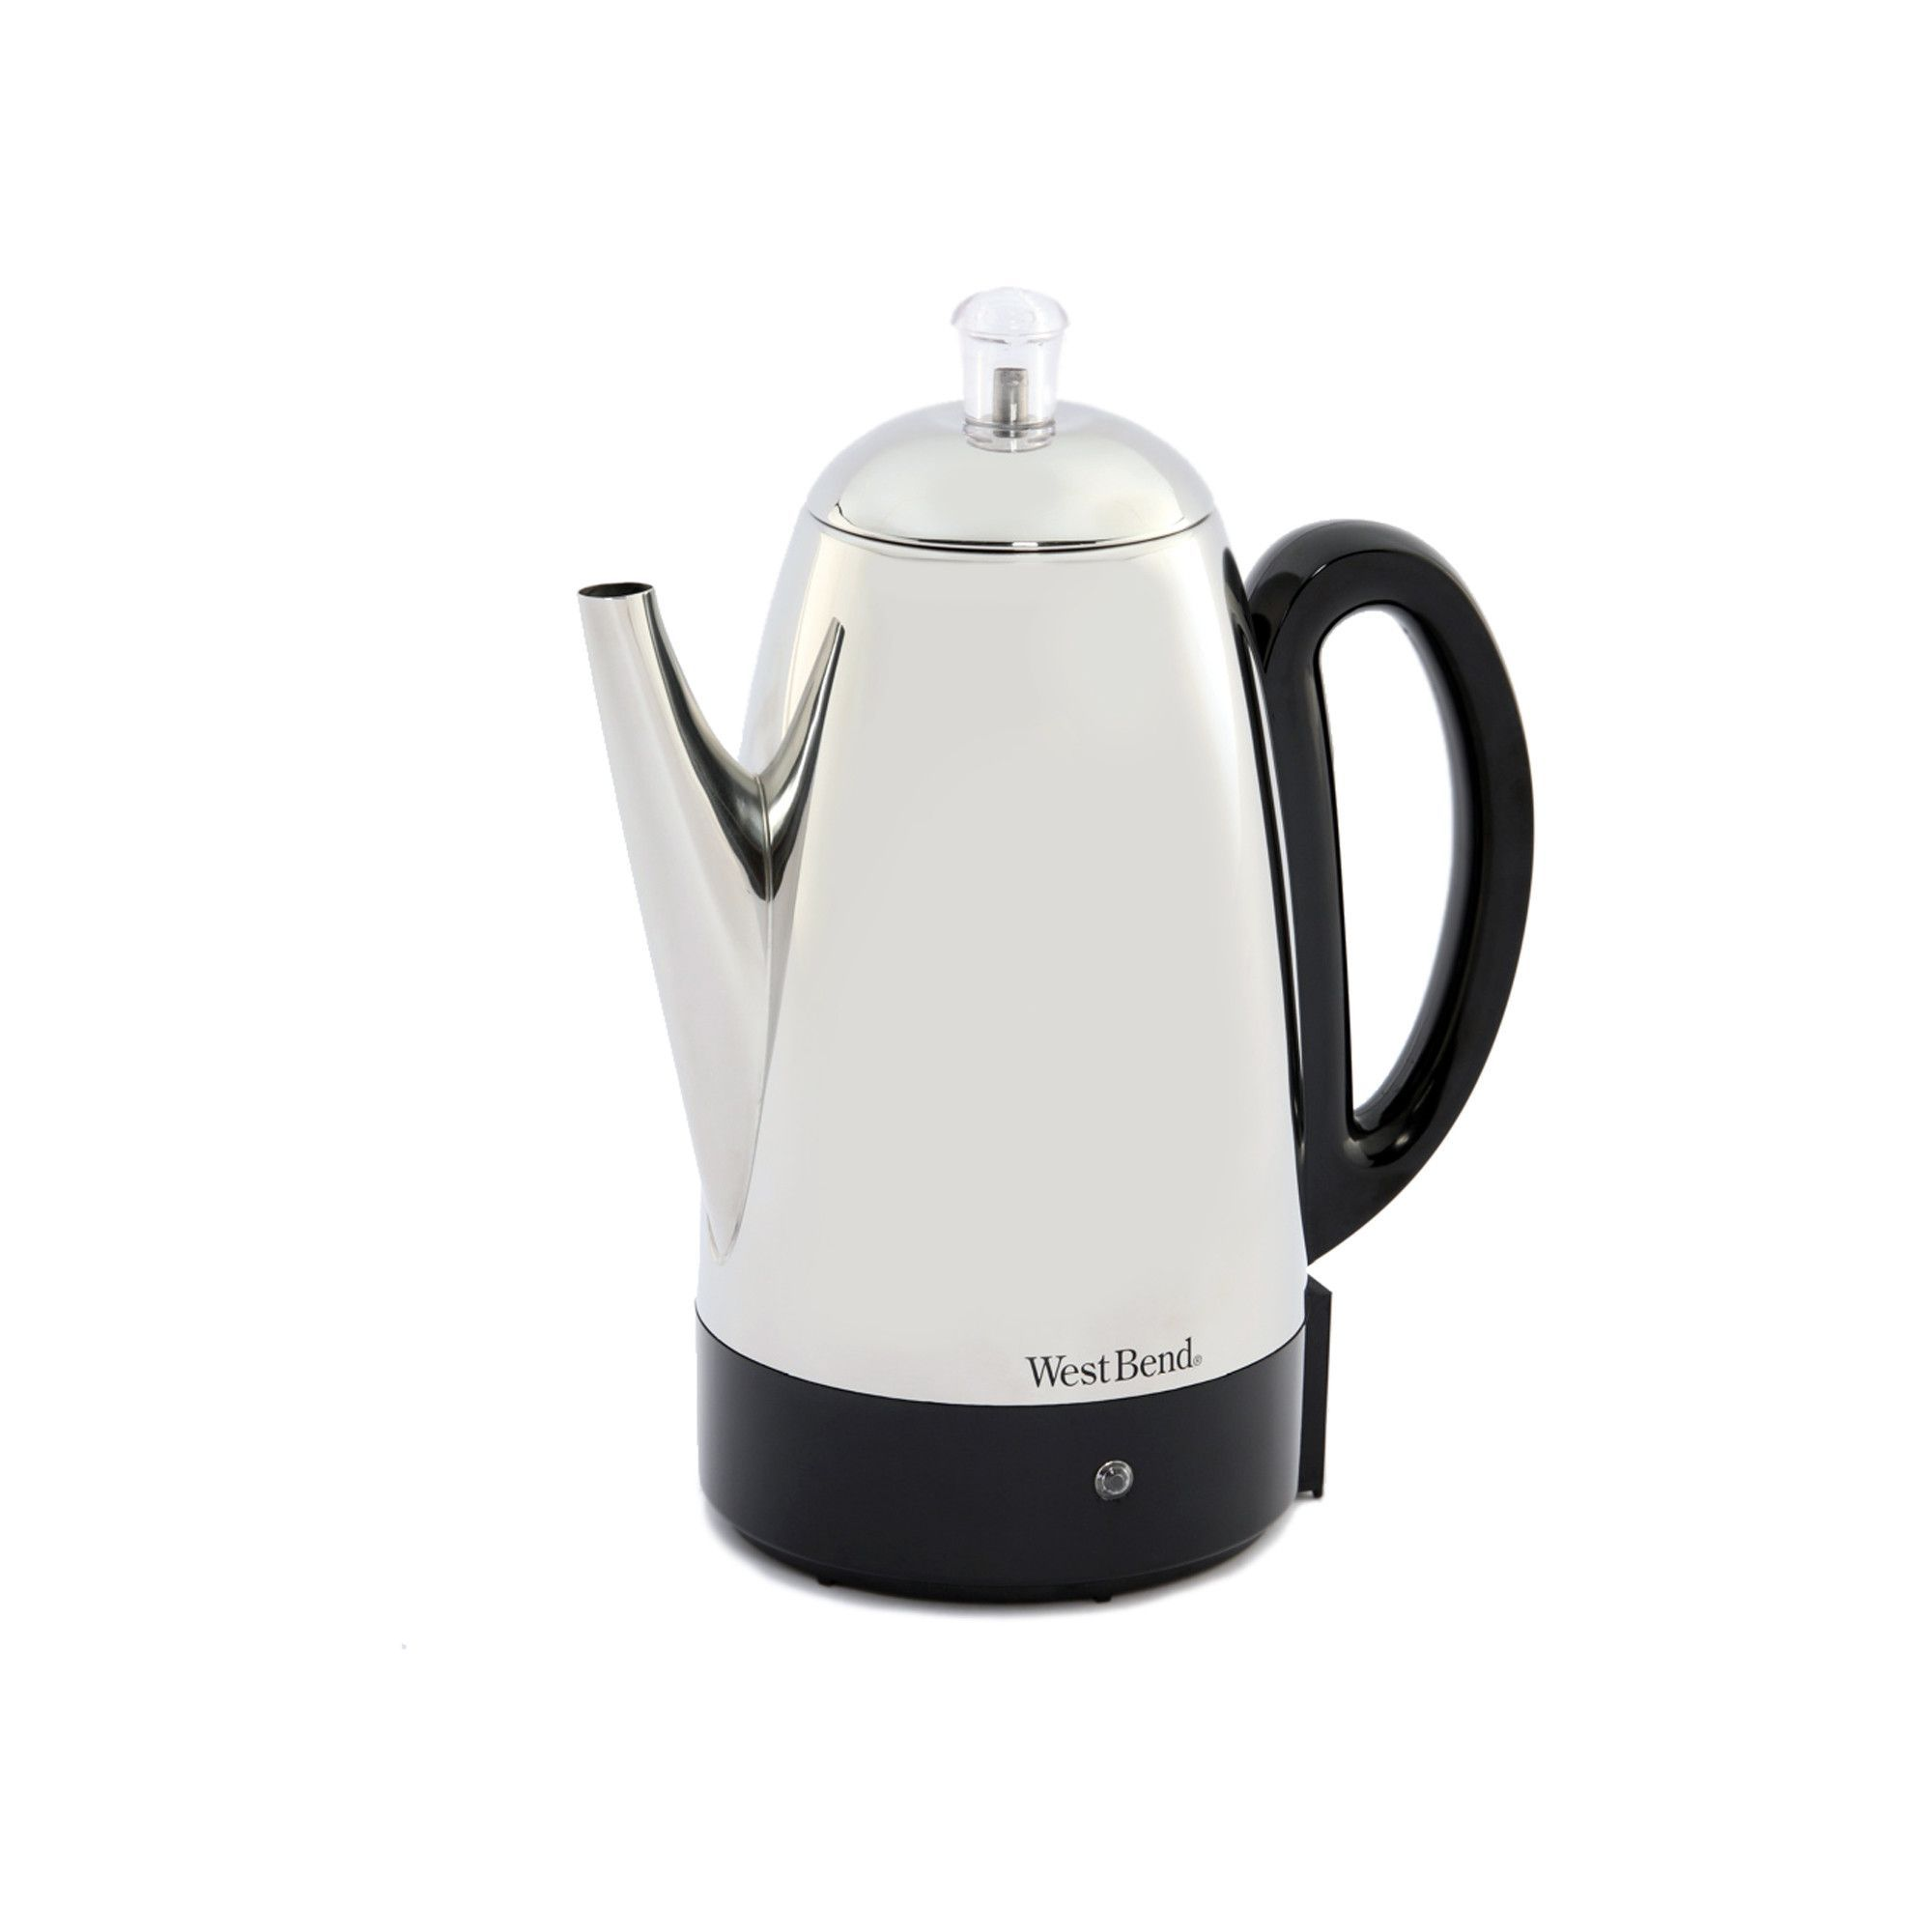 Features Electric Percolator Stainless Steel 12 Cup Capacity Robust Percolator Coffee Percolator West Bend